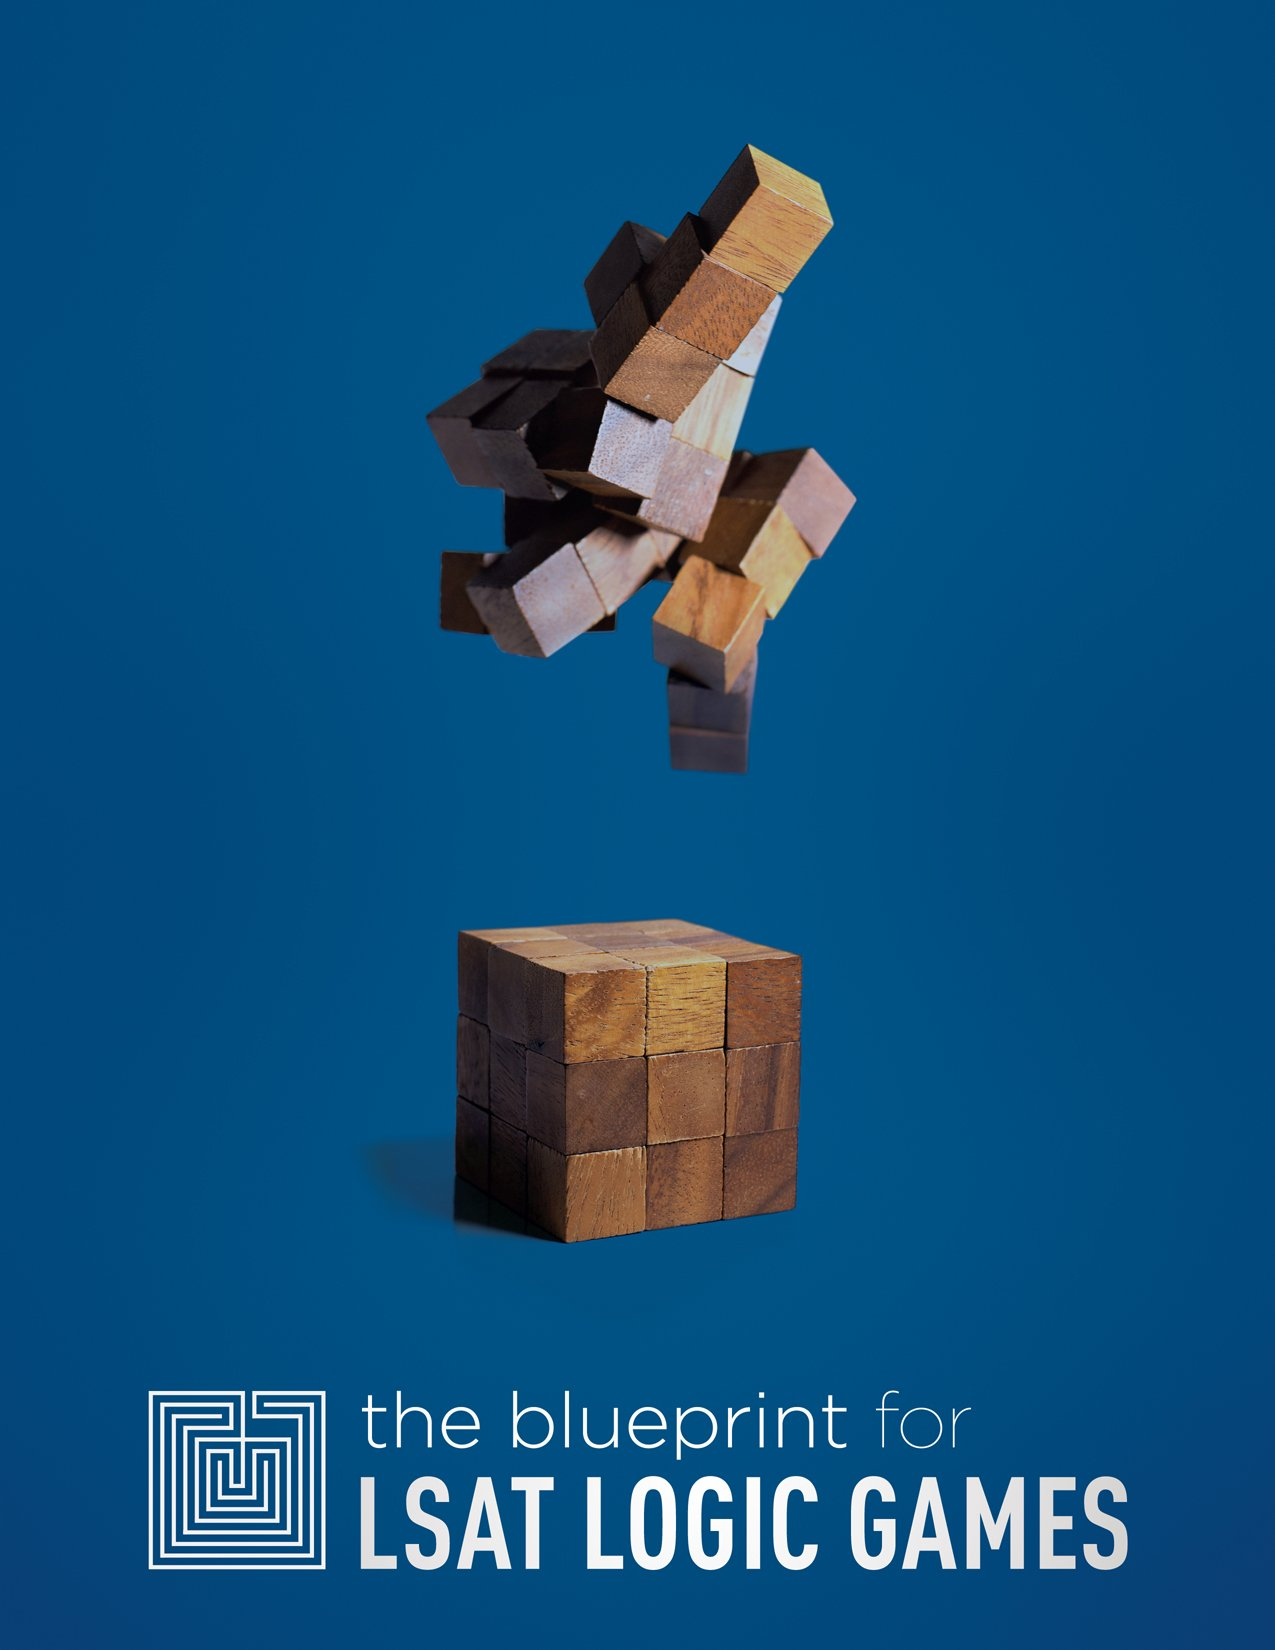 The blueprint for lsat logic games blueprint lsat preparation the blueprint for lsat logic games blueprint lsat preparation trent teti jodi teti matthew riley 9780984219902 amazon books malvernweather